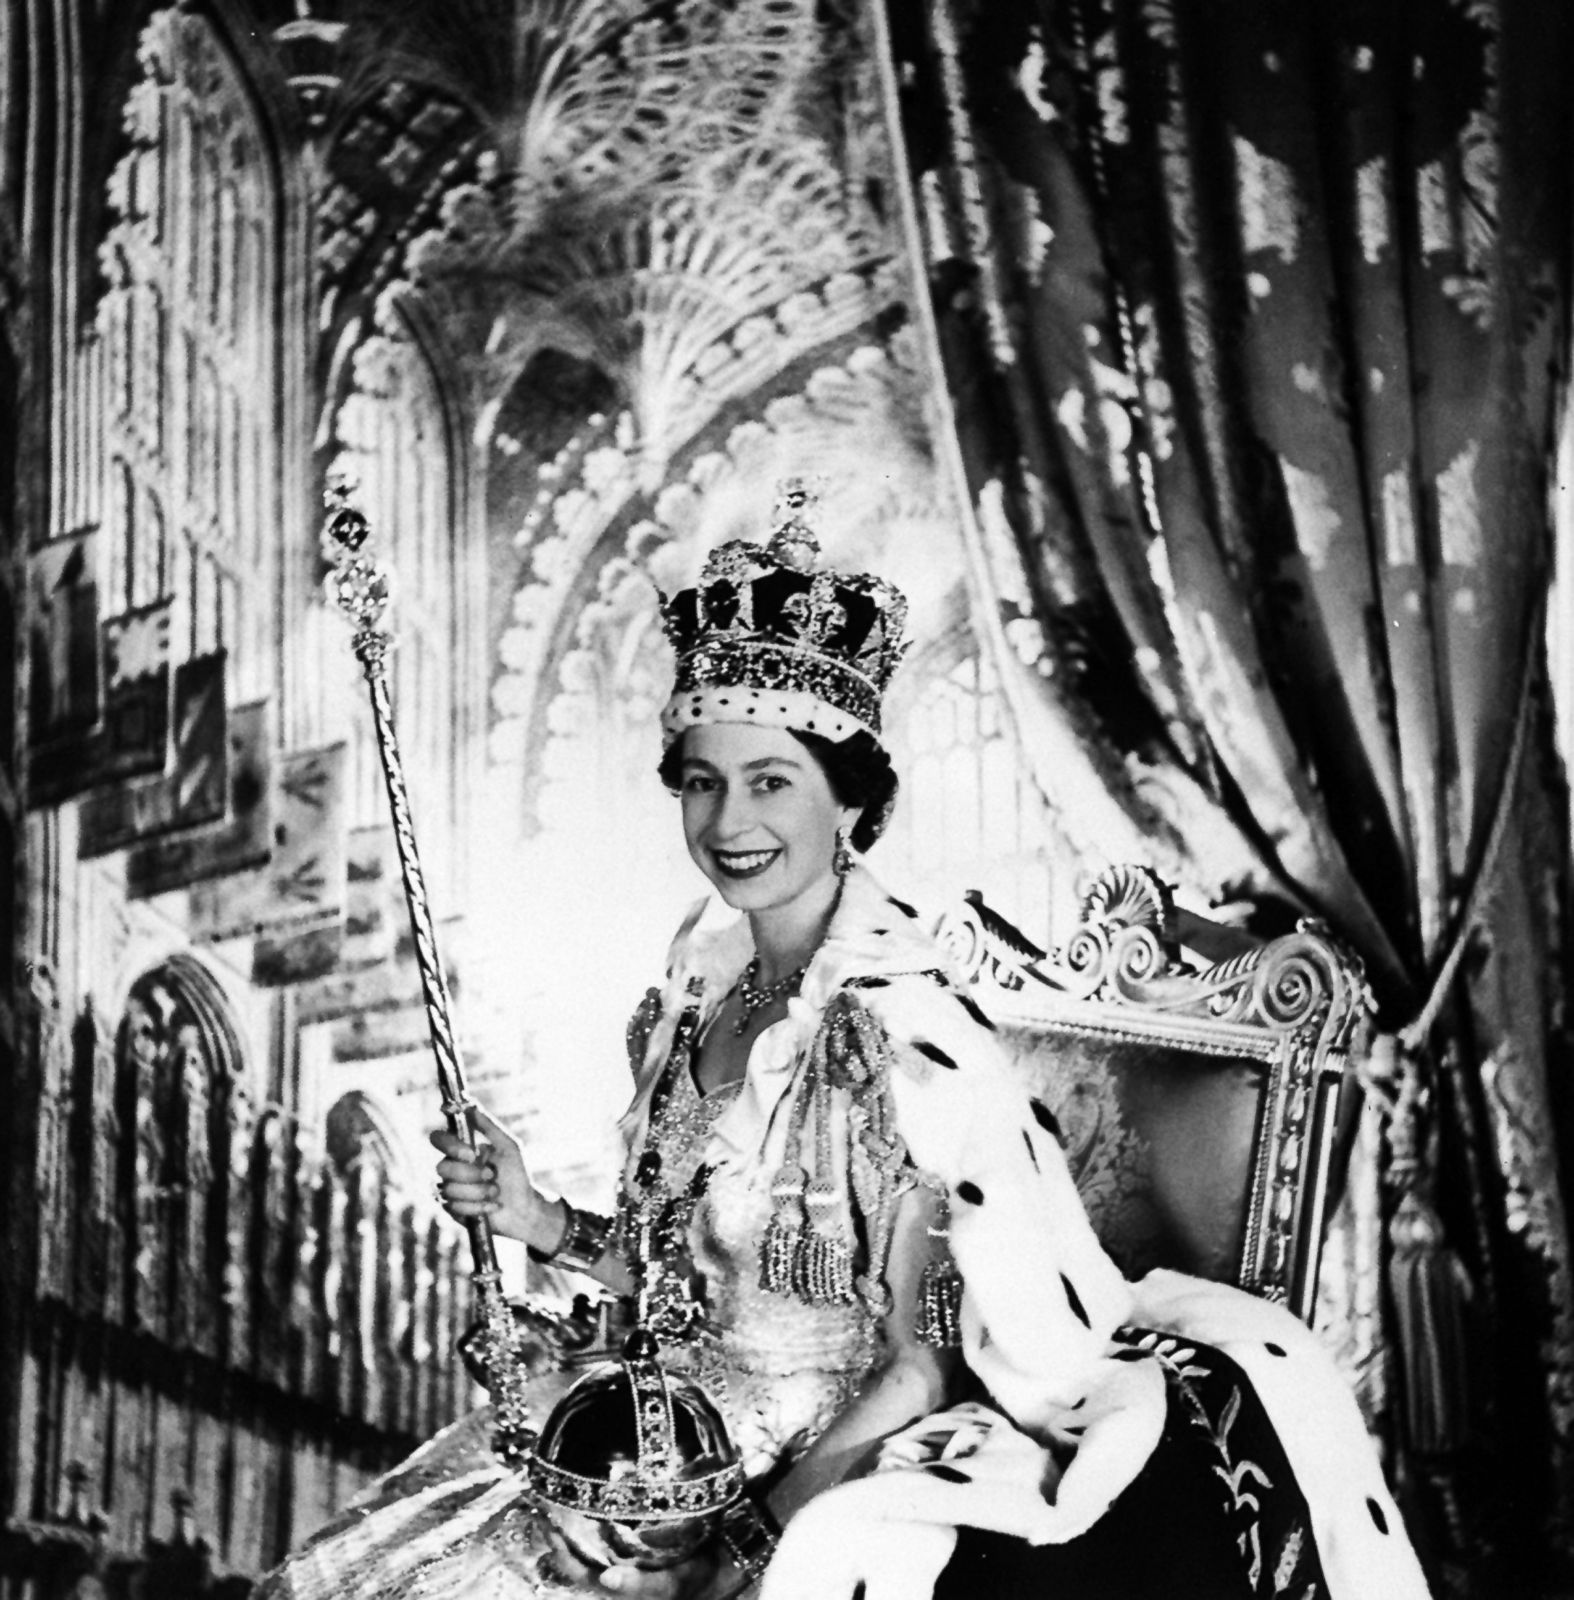 queen elizabeth ii s life through the years photos abc news queen elizabeth ii s life through the